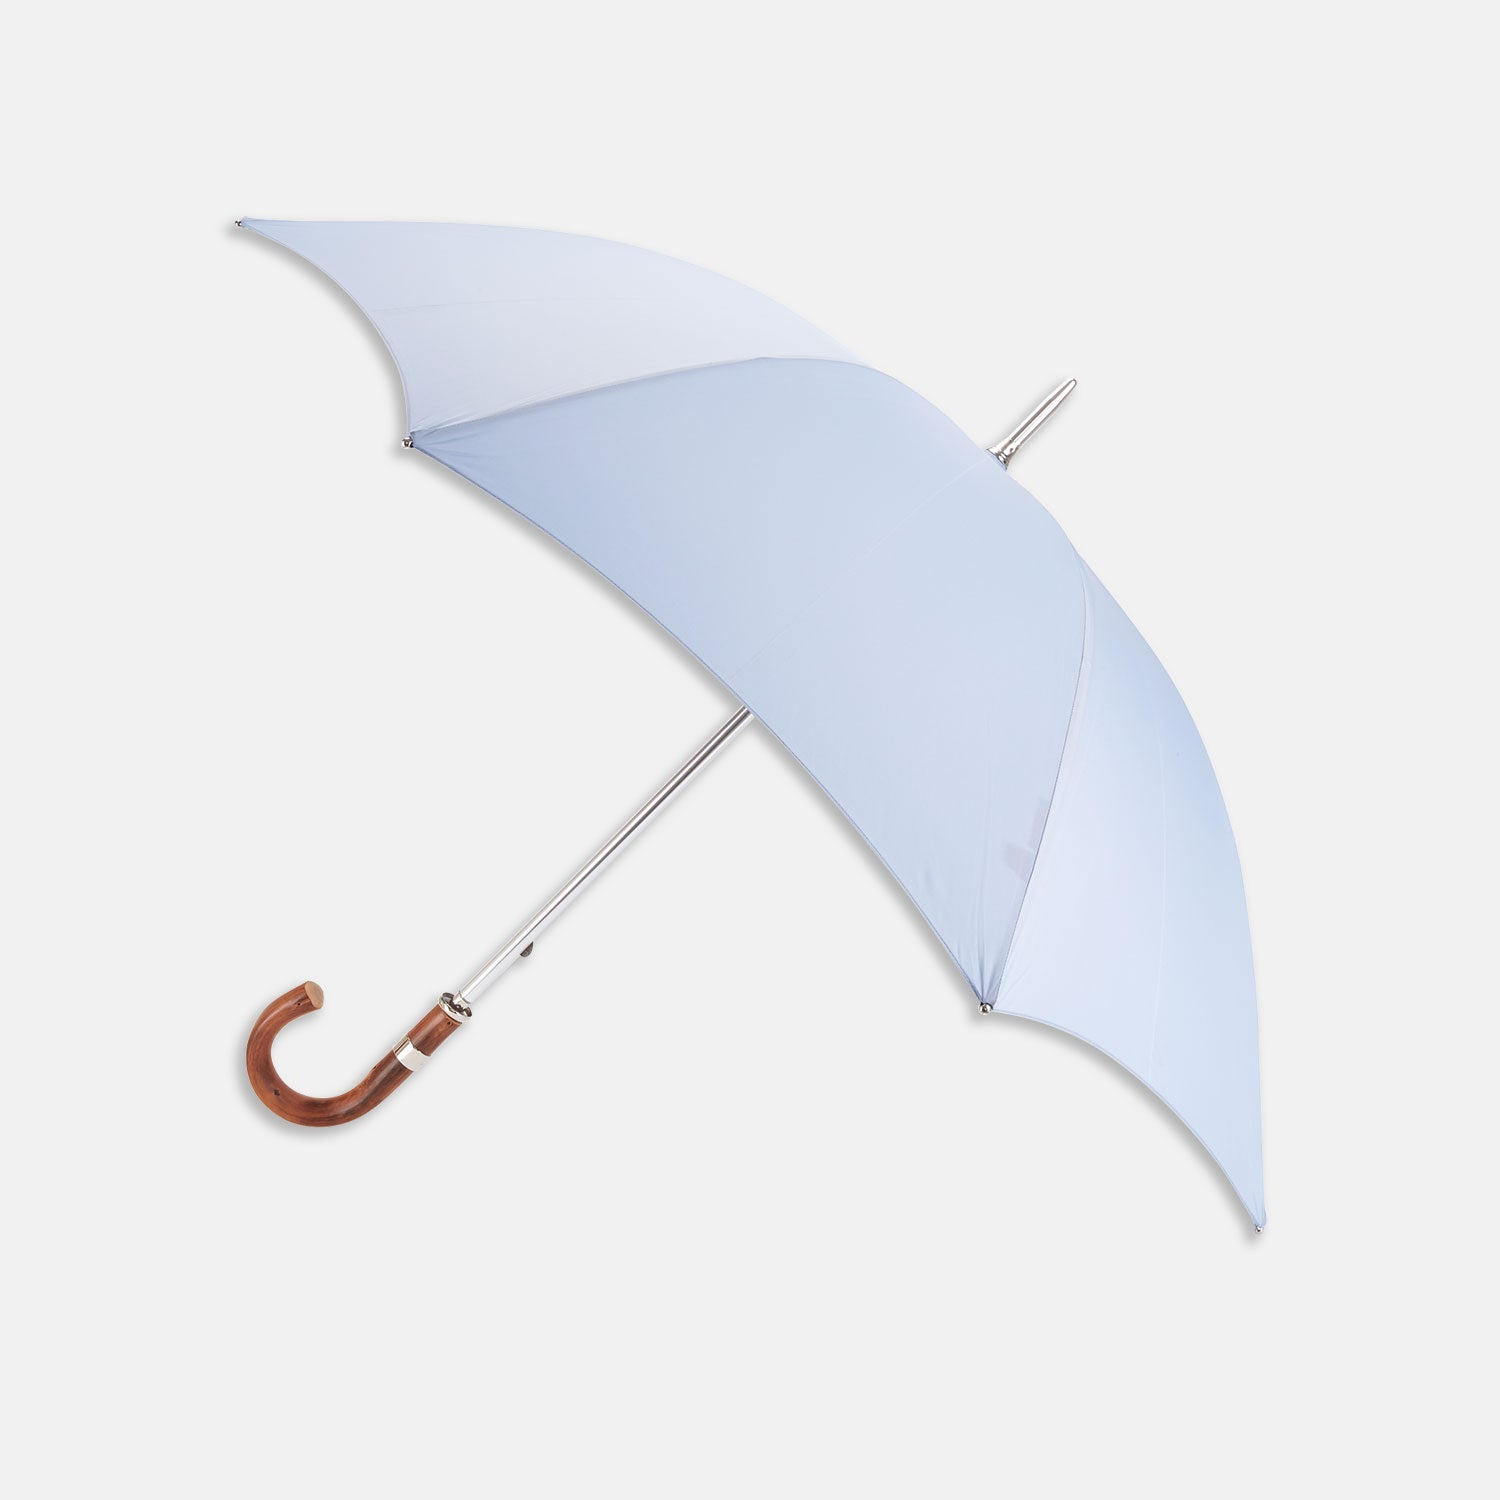 Light Blue Umbrella with Chestnut Crook